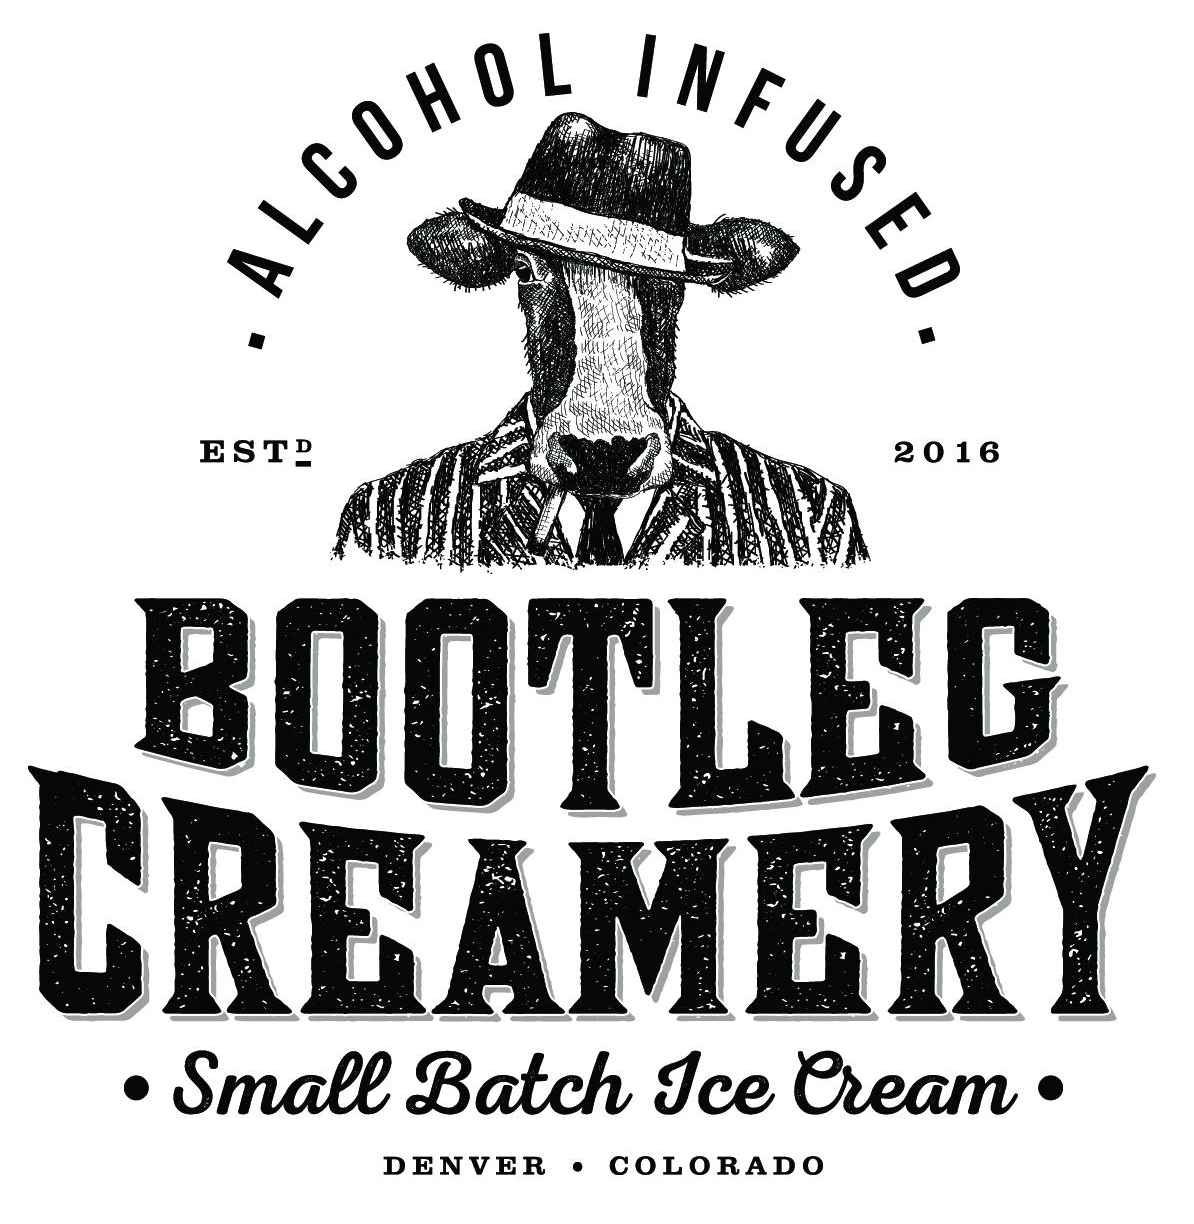 Bootleg Creamery - Alcohol Infused Ice Creams